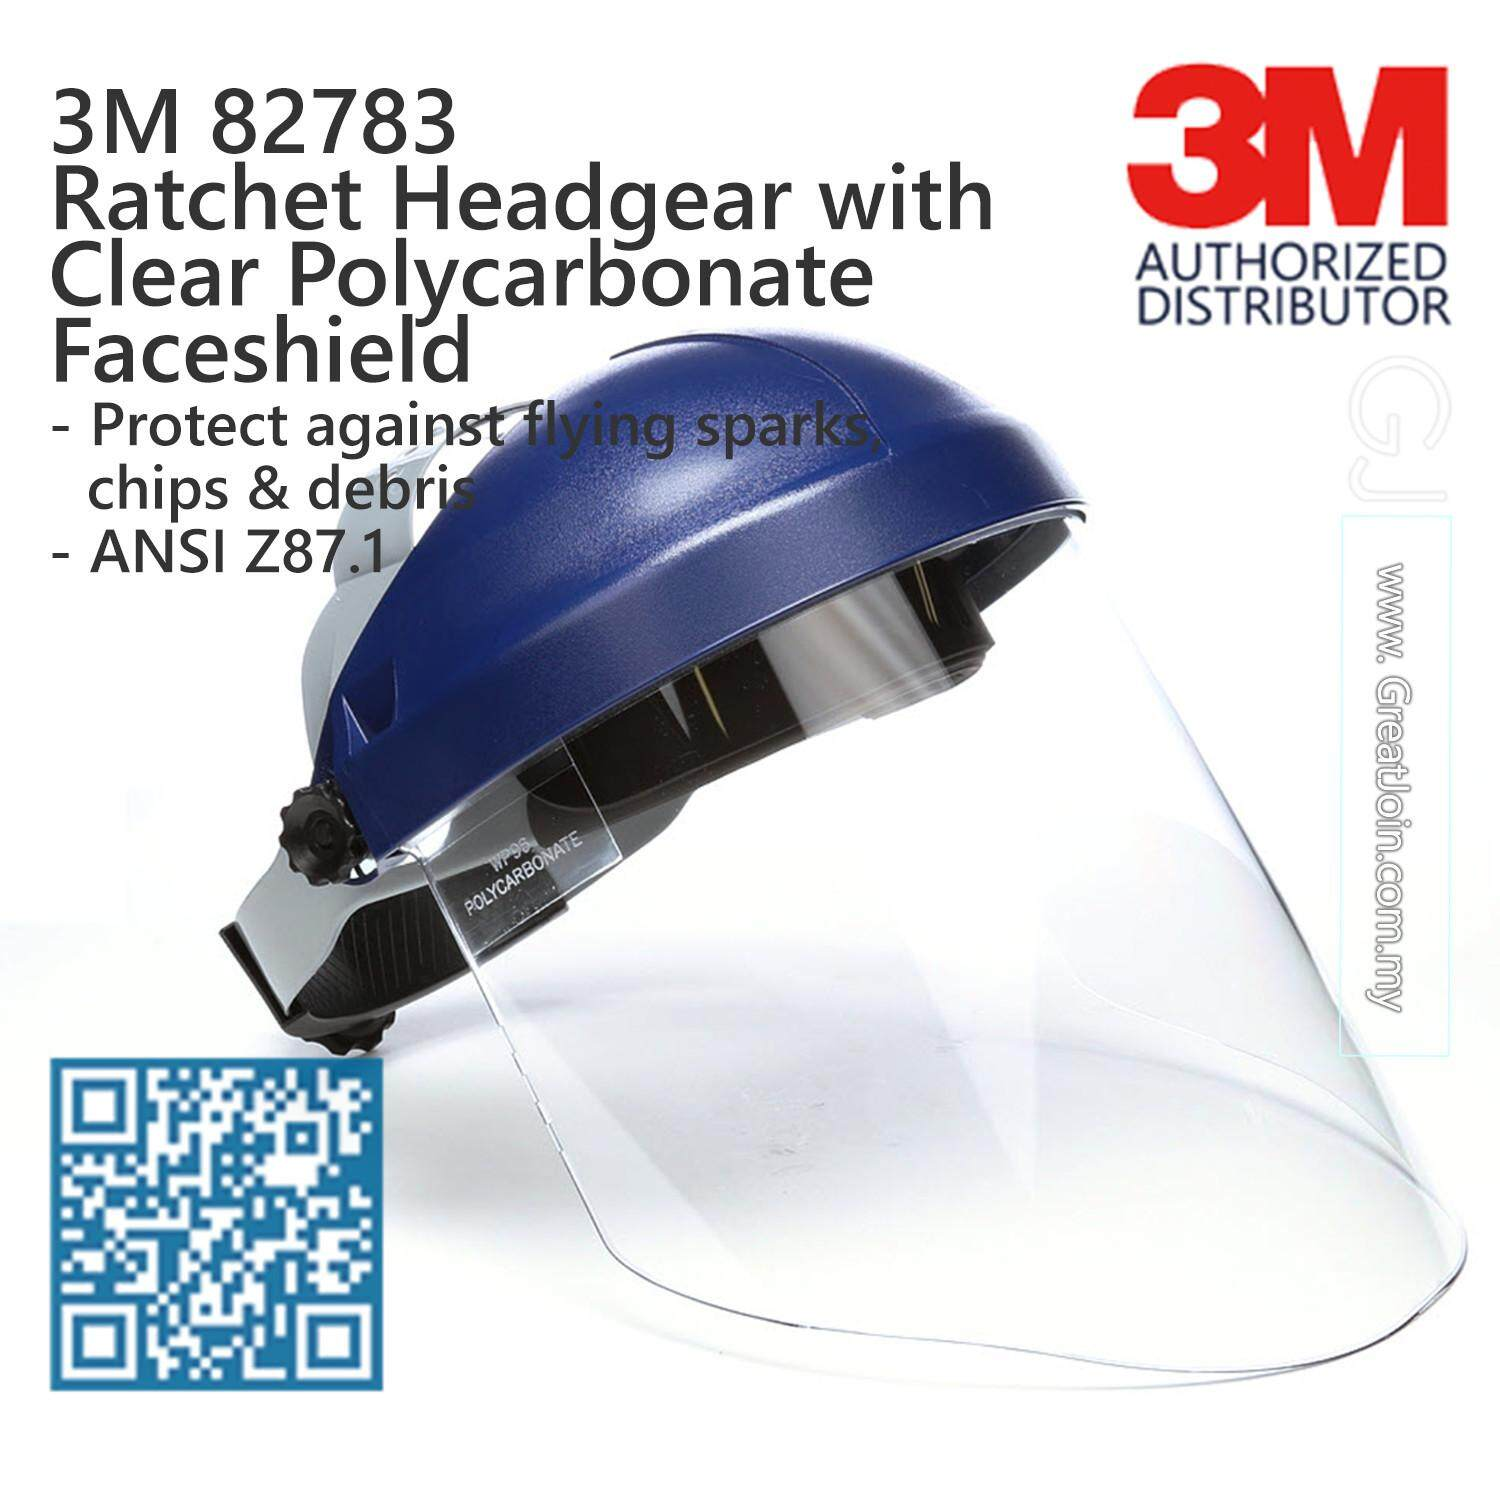 3M 82783 Ratchet Headgear with Clear Polycarbonate Faceshield/ Head & Face Protection/ 13-Point Suspension Ratchet Type/ ANSI Approval [1 piece]